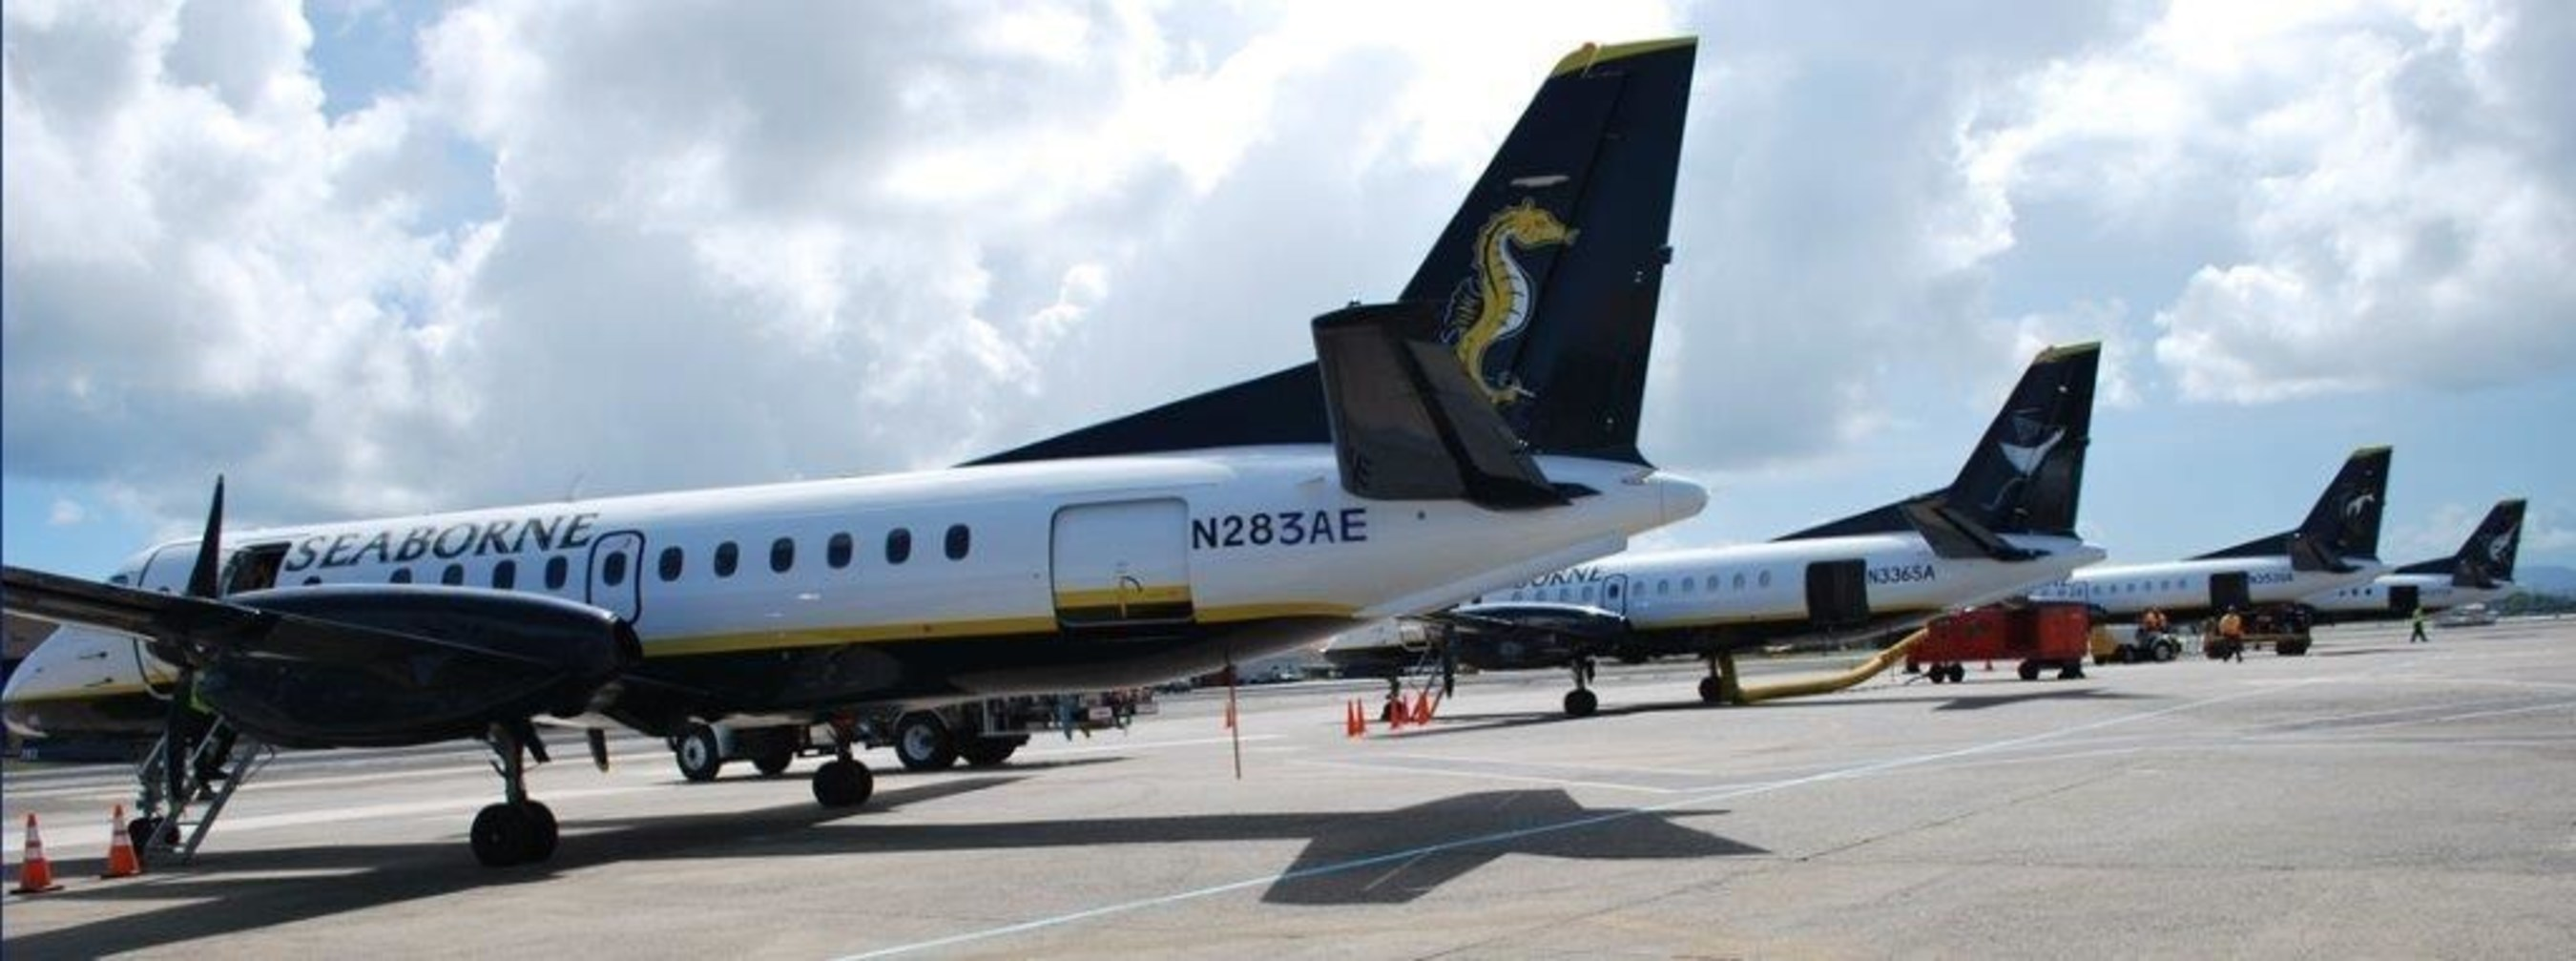 Seaborne Announces New Service Between Puerto Rico and Antigua and Barbuda